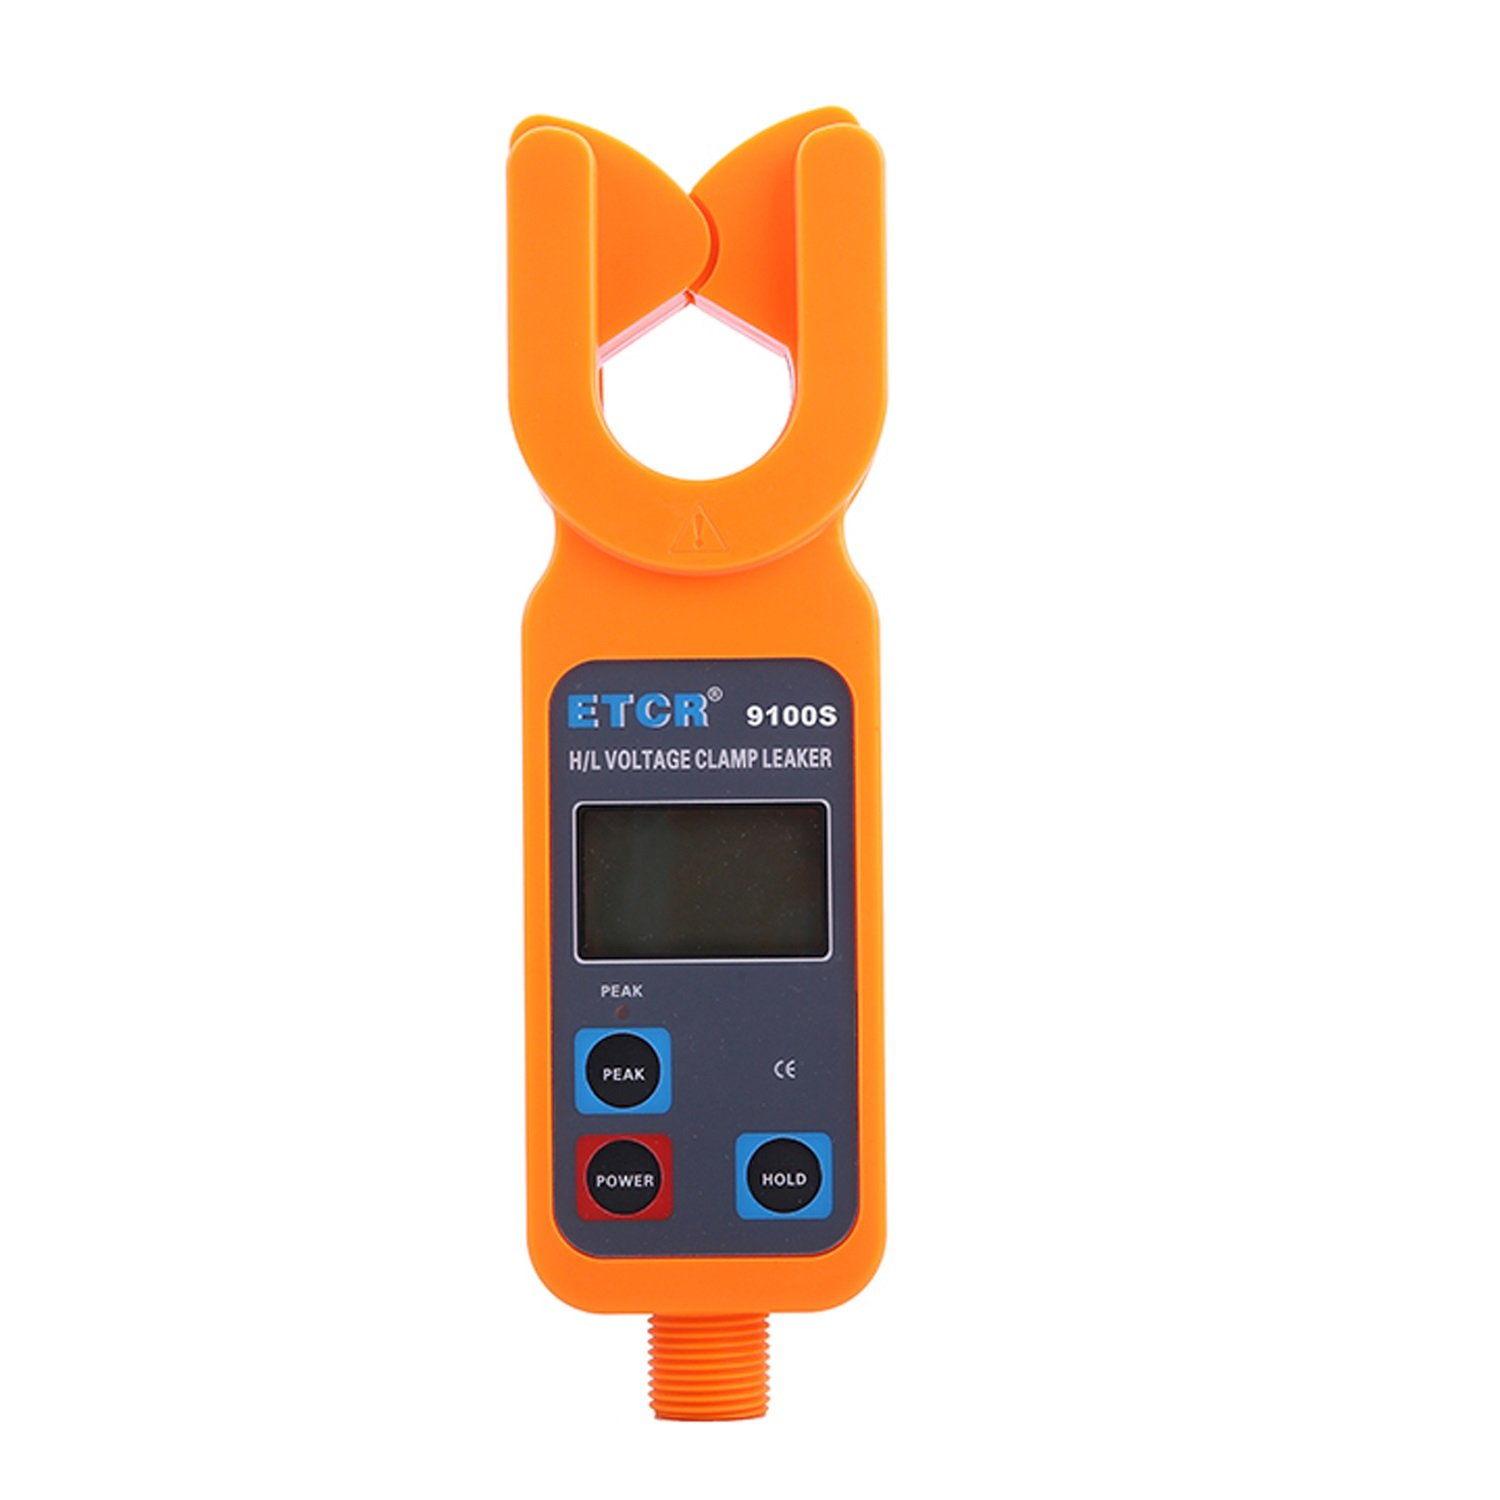 Lanlanmaoyimg Ammeter Portable Type High/Low Voltage Clamp Current Leaker ETCR9100S Precision Measurement